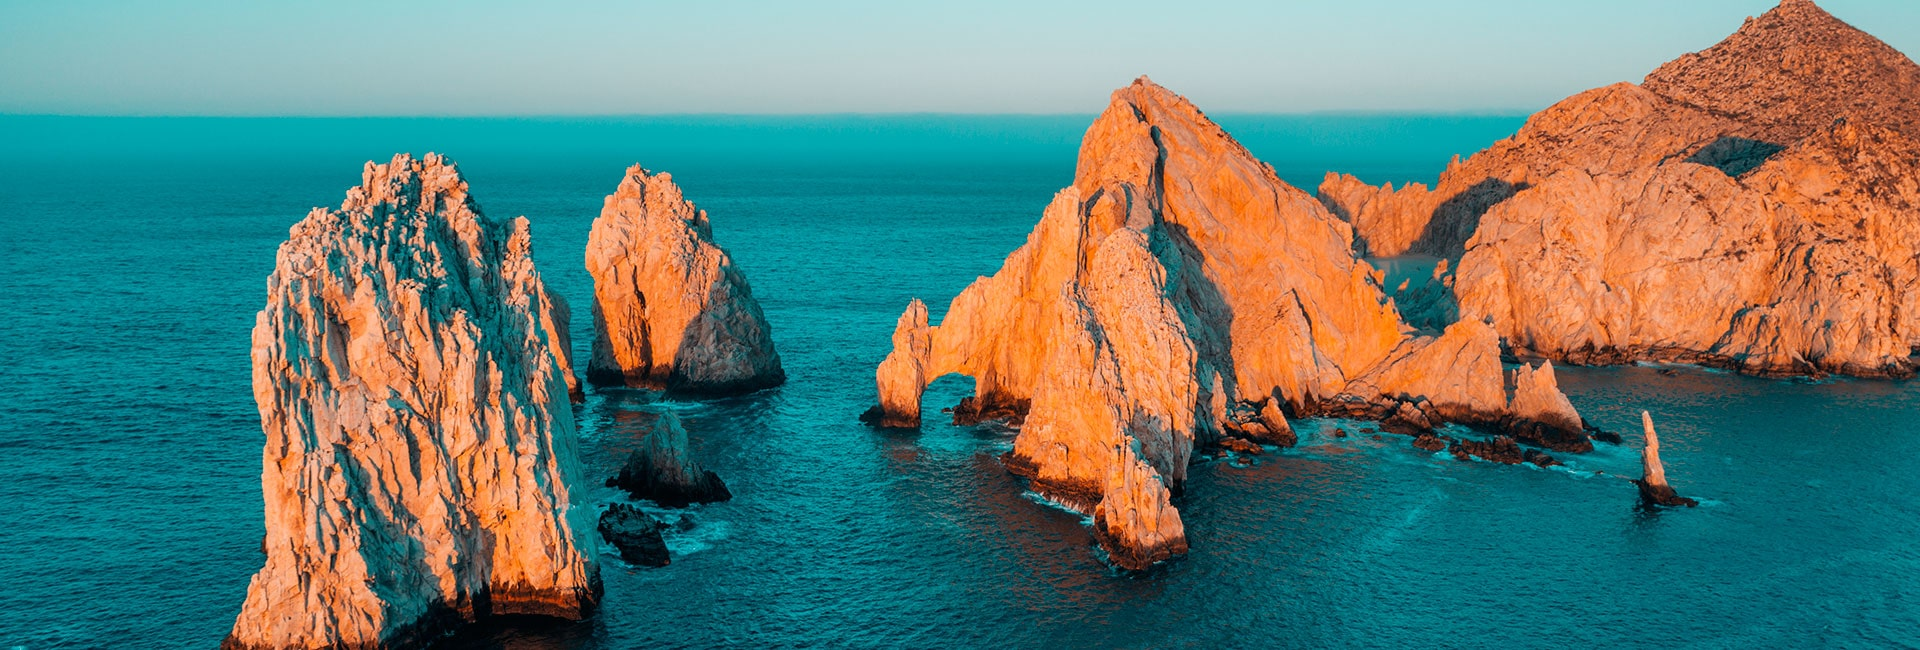 Is los cabos safe to travel